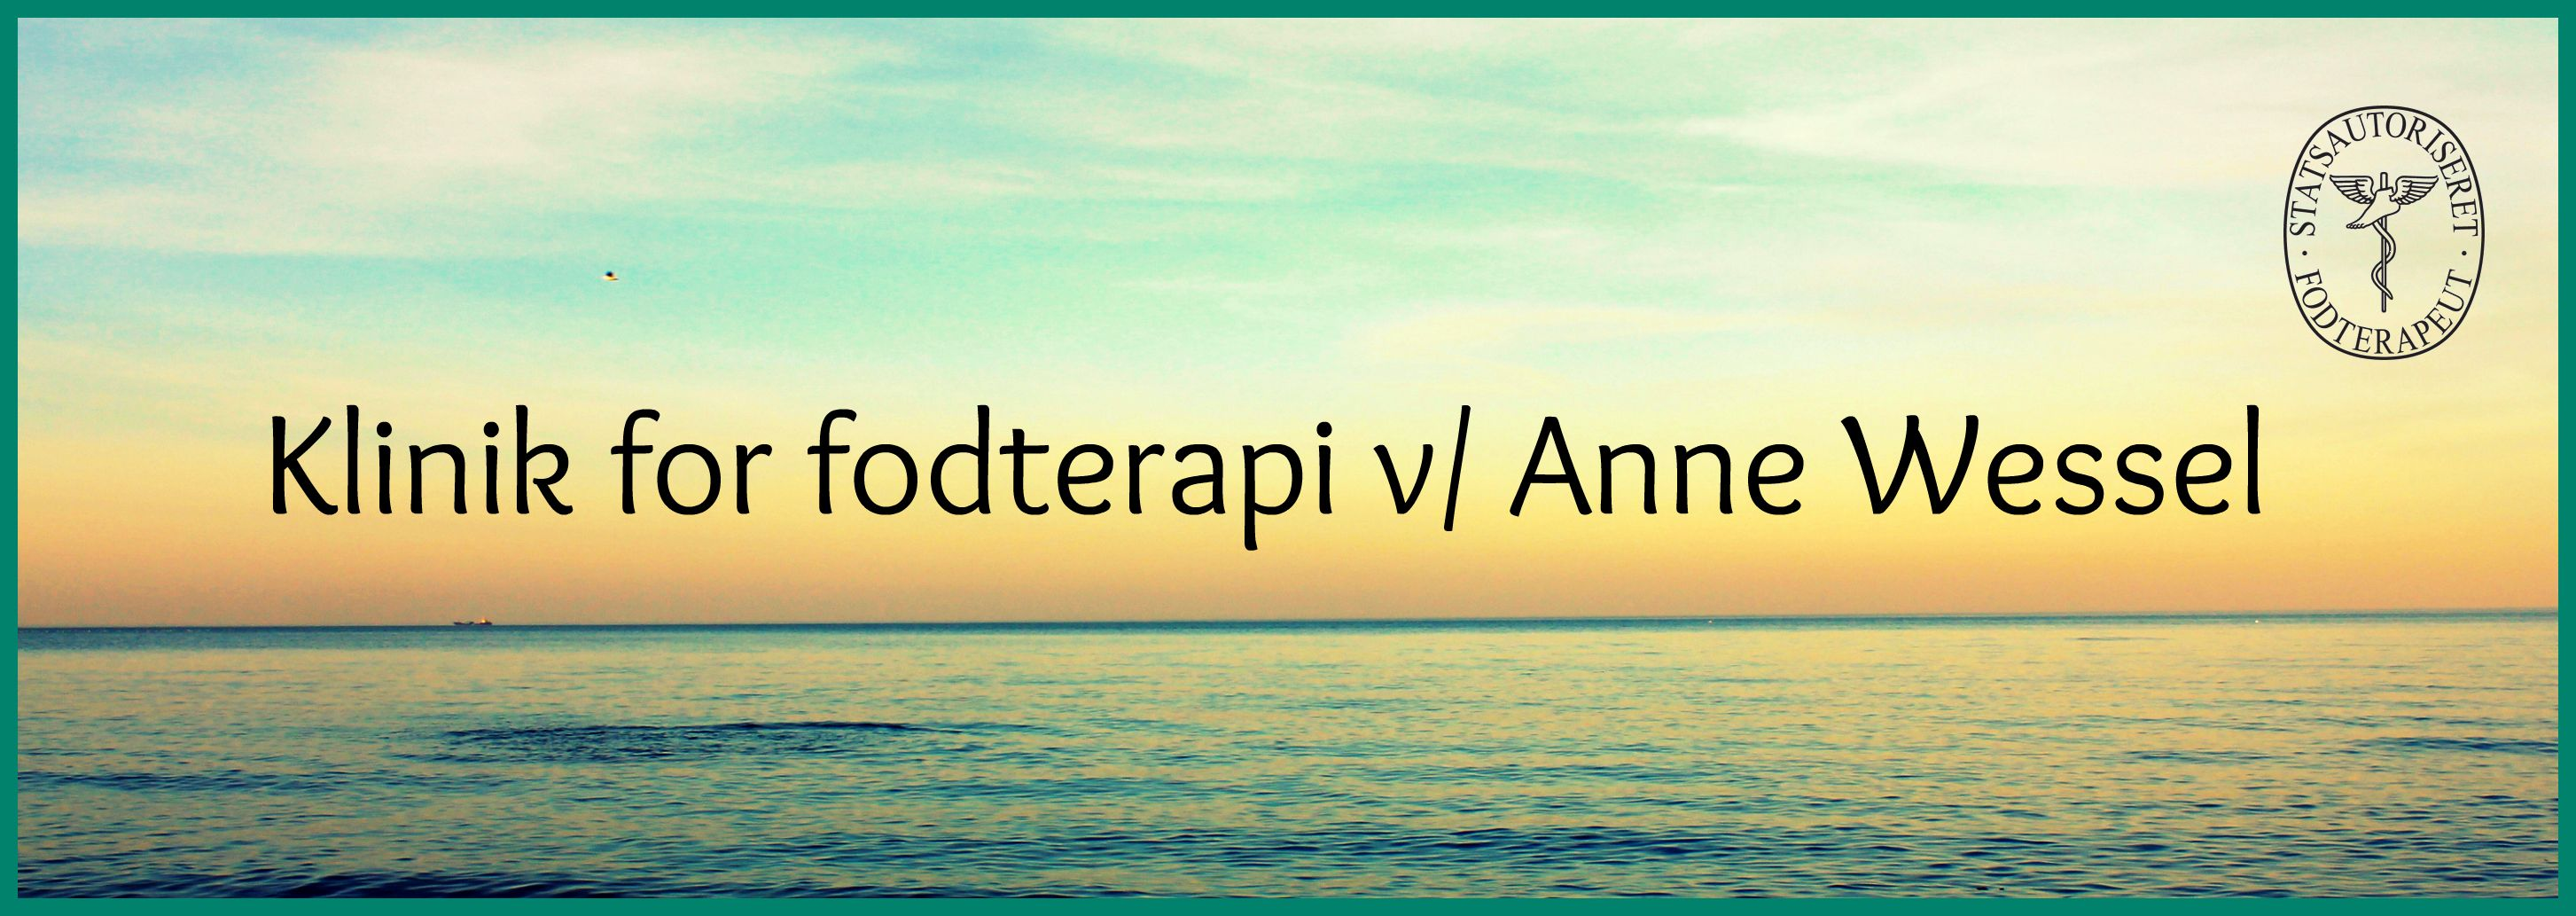 Klinik for fodterapi v/ Anne Wessel